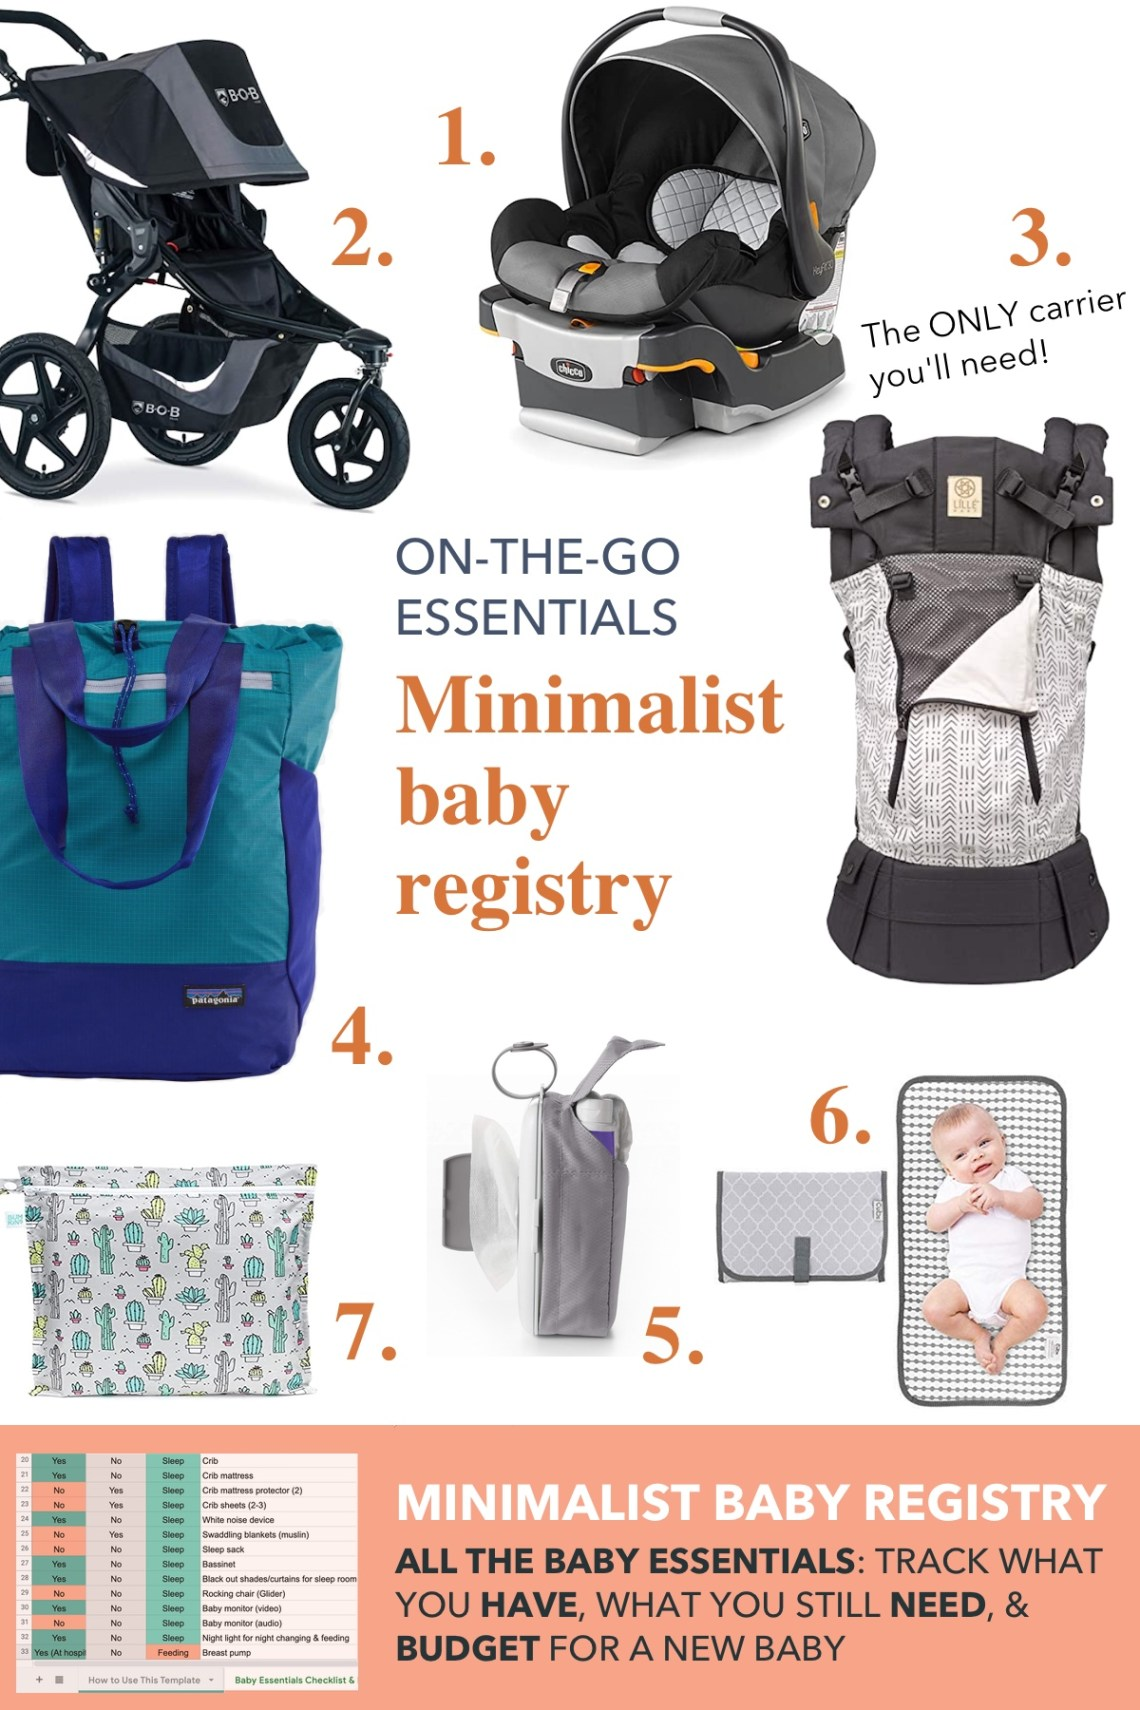 On the go baby essentials: strollers, car seats, baby wearing and diaper bag essentials